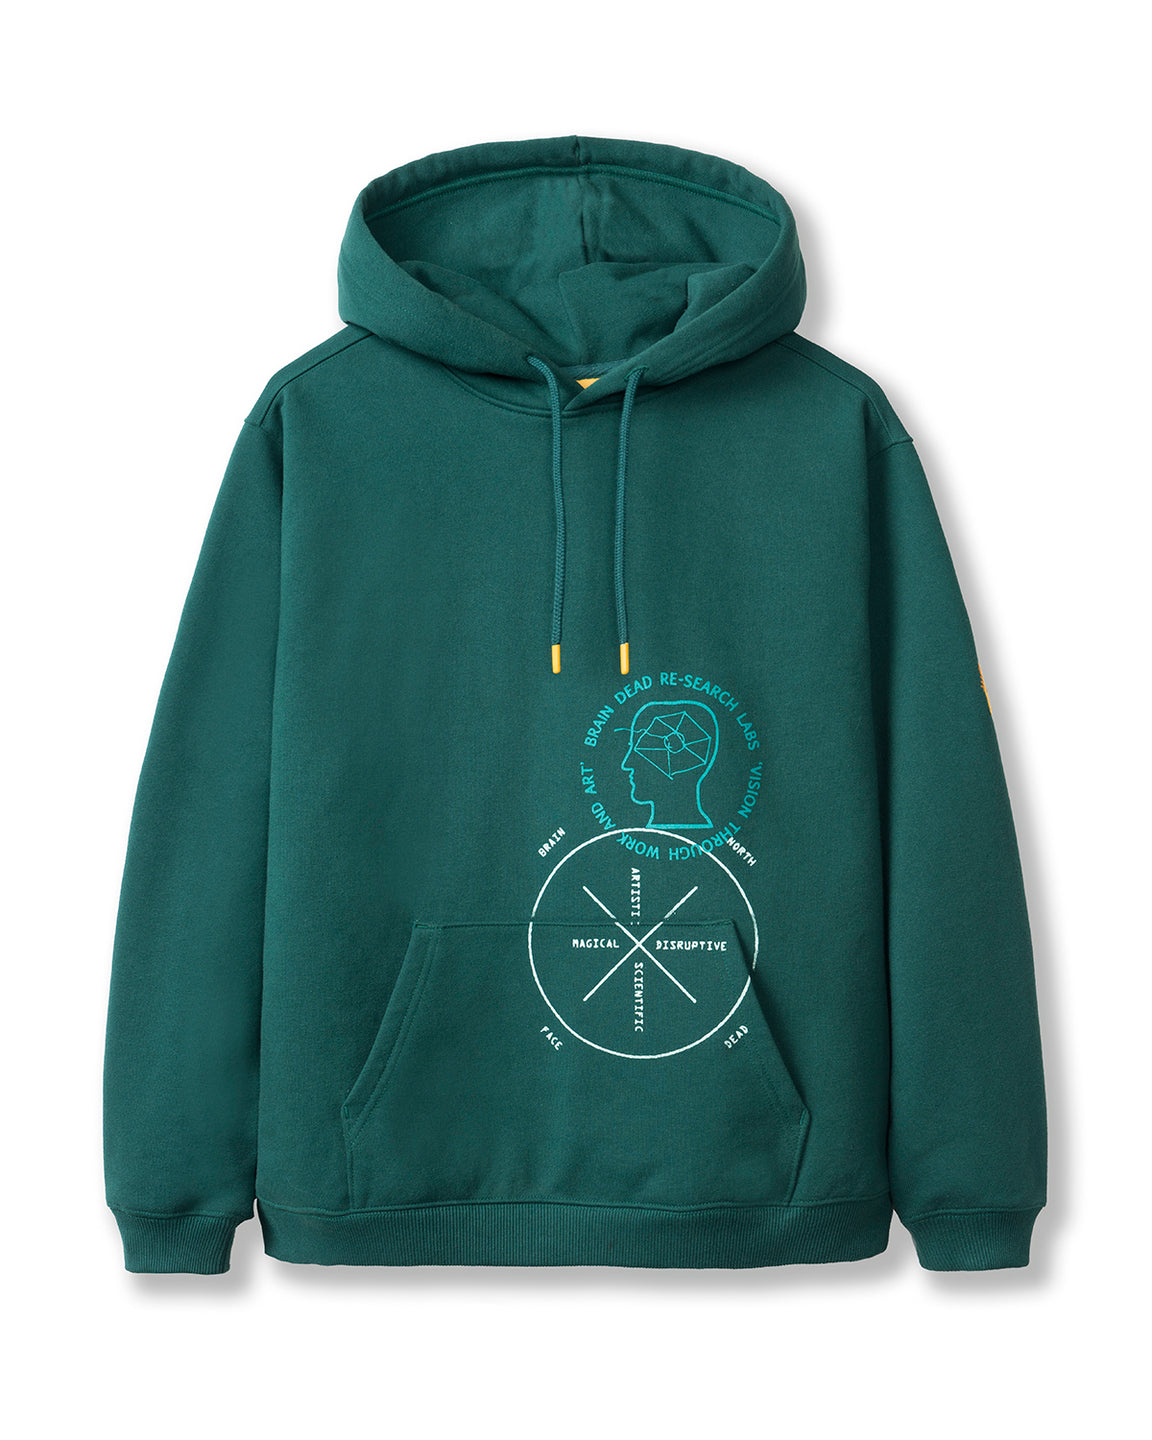 Brain Dead x The North Face Drop Shoulder PO Hoodie - Night Green